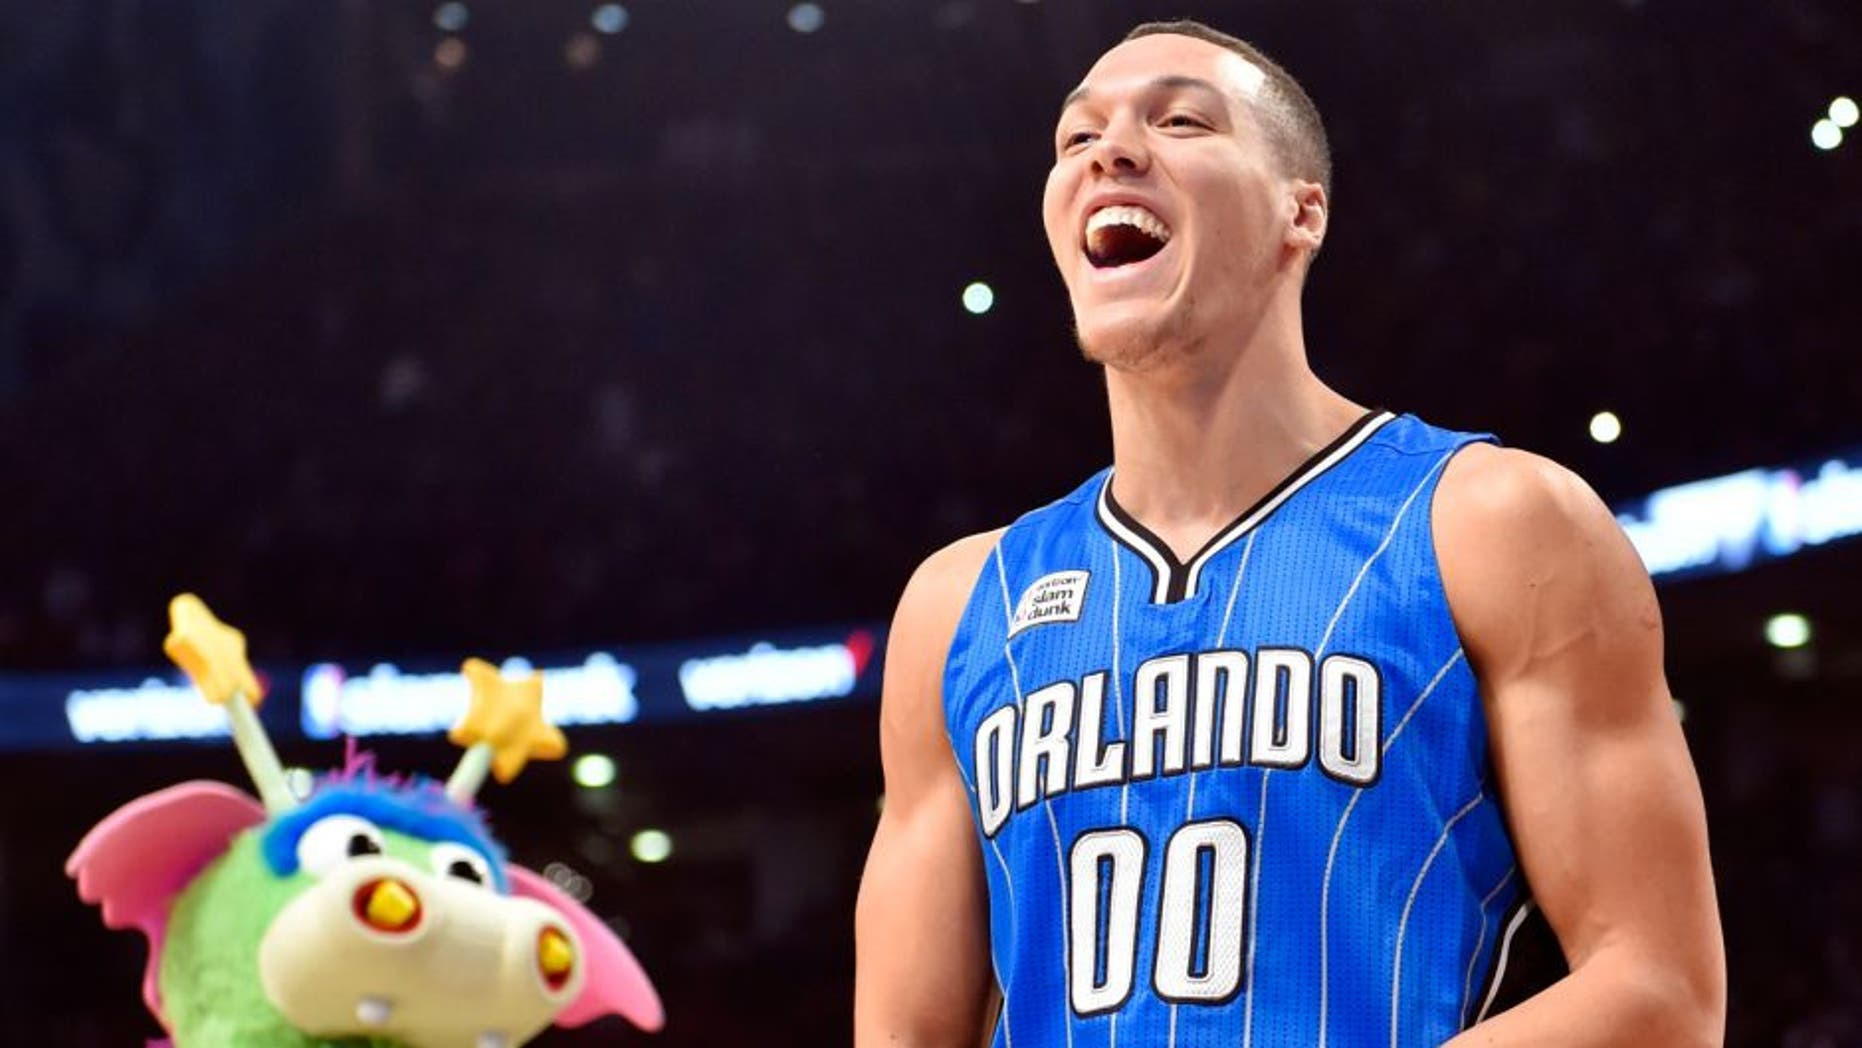 Feb 13, 2016; Toronto, Ontario, Canada; Orlando Magic forward Aaron Gordon reacts after a successful dunk over the Magic mascot during the dunk contest during the NBA All Star Saturday Night at Air Canada Centre. Mandatory Credit: Bob Donnan-USA TODAY Sports